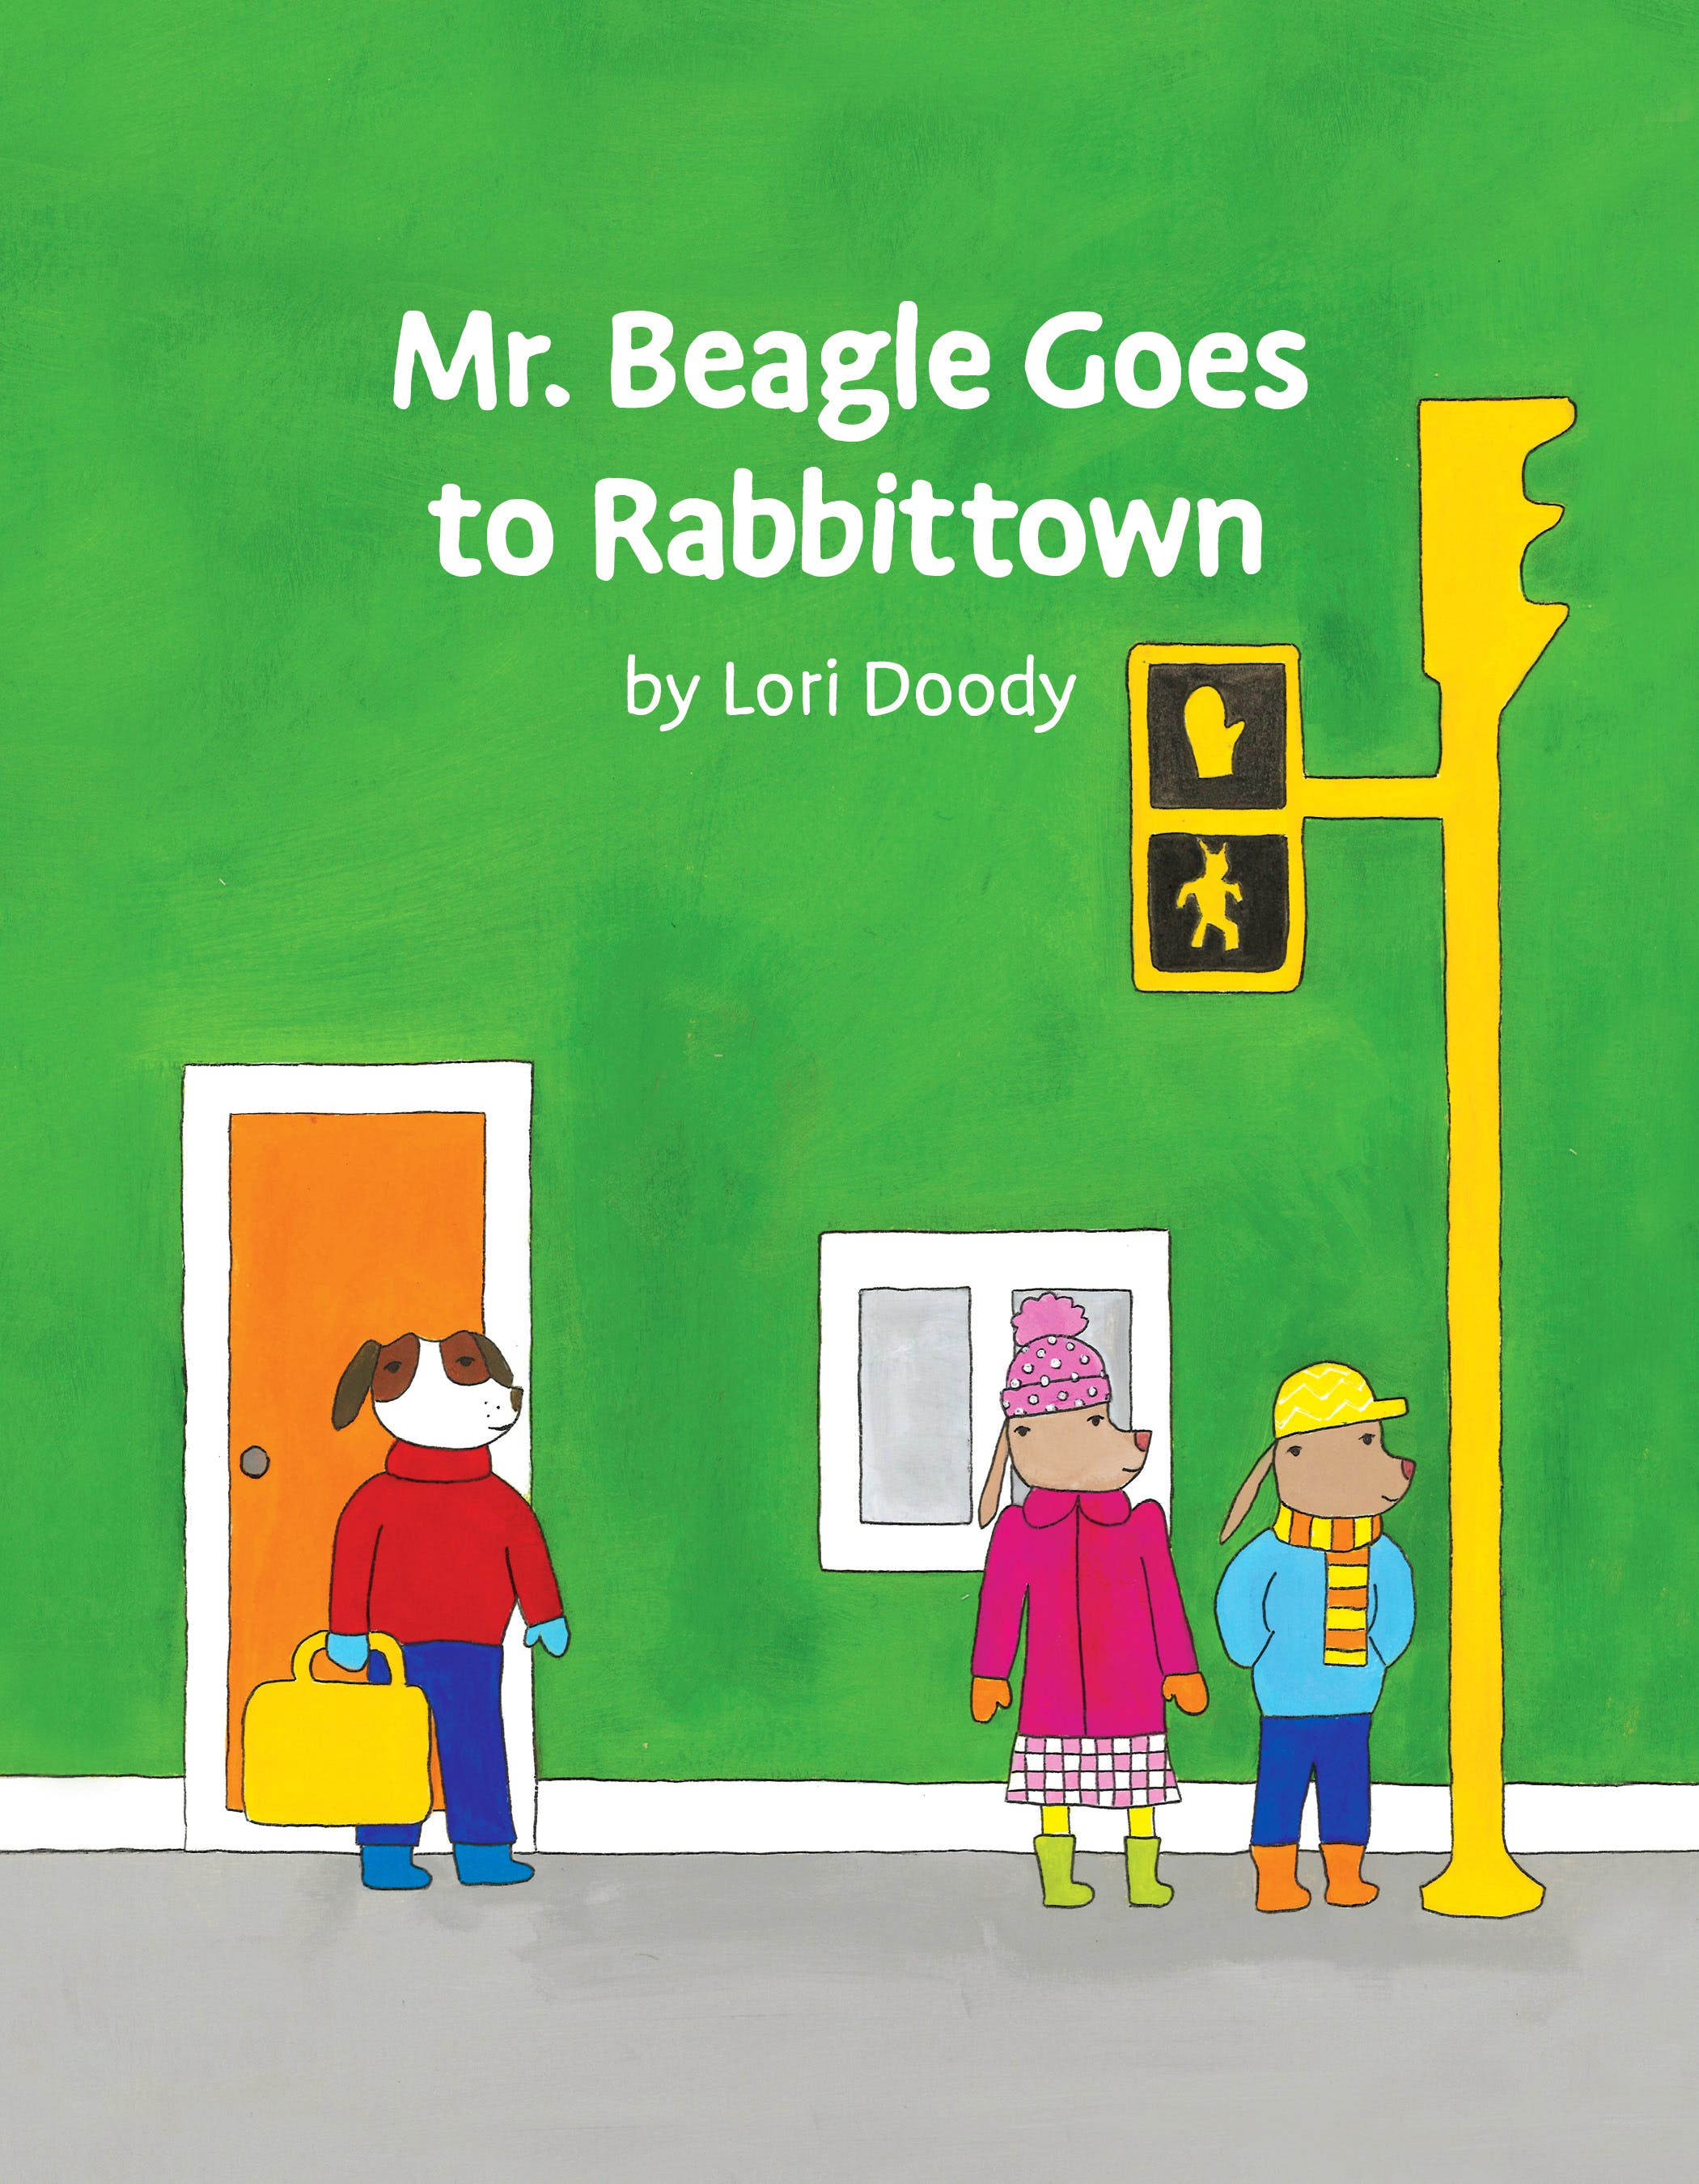 """""""Mr. Beagle Goes to Rabbittown"""" is published by Running the Goat Books & Broadsides Inc. CONTRIBUTED"""